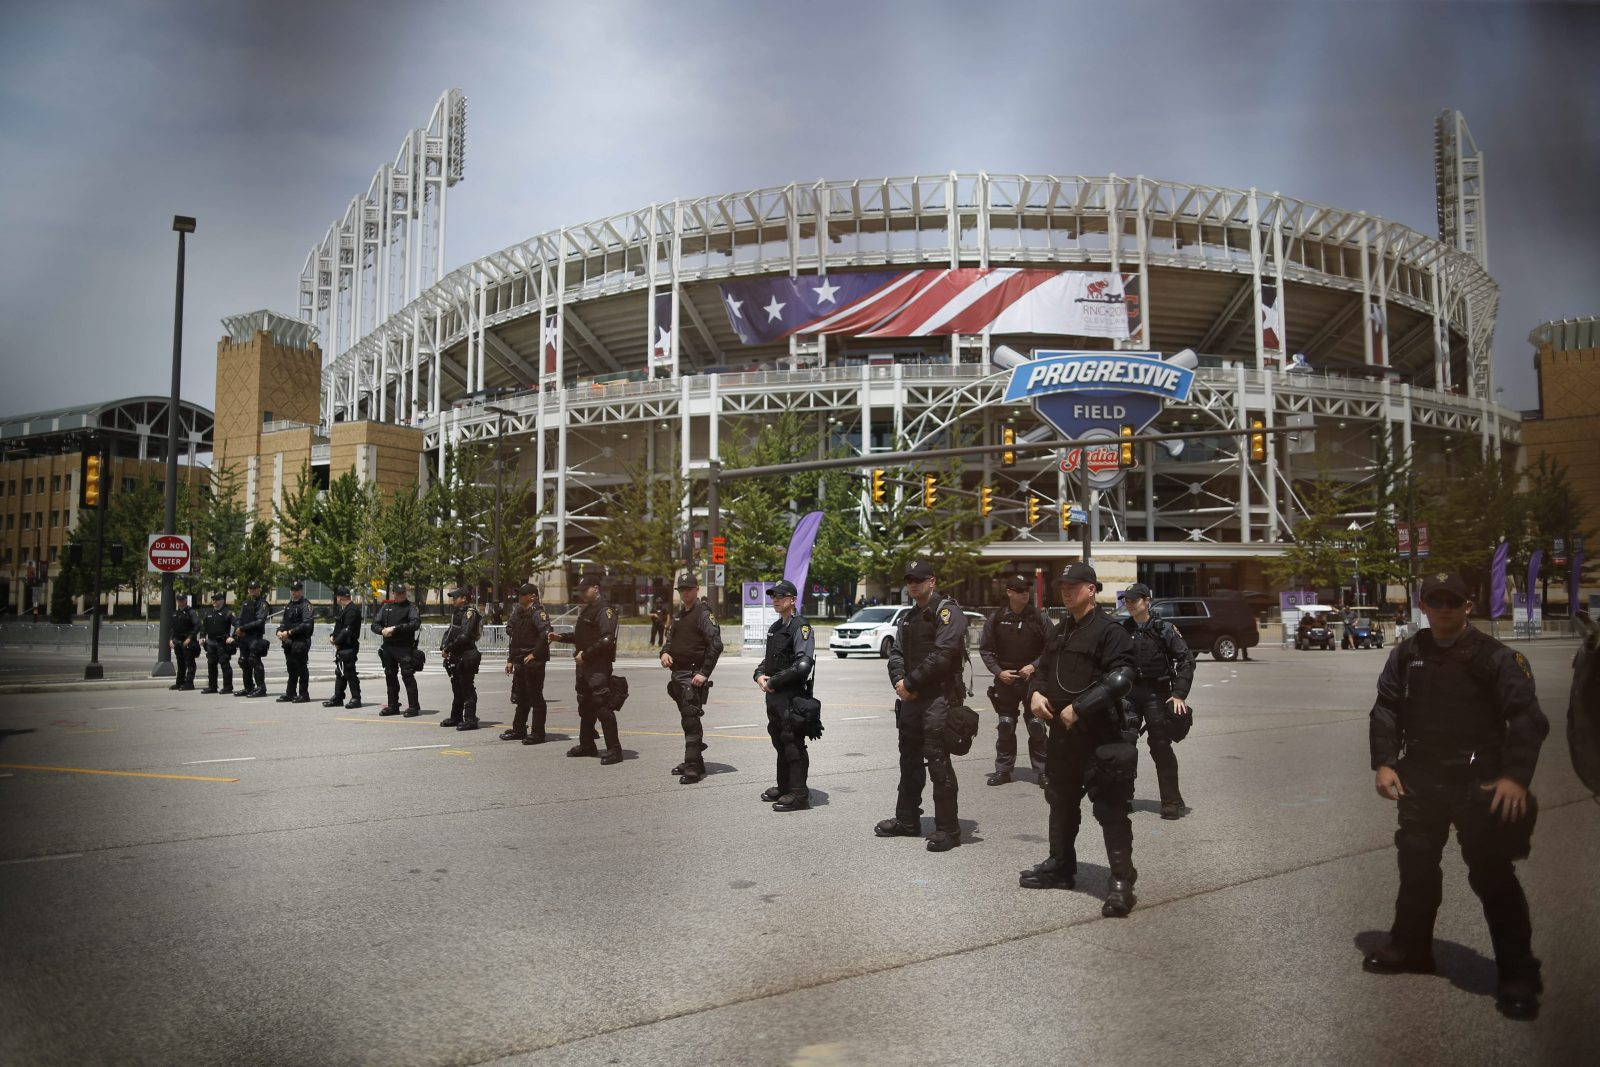 Police officers stand in formation outside Progressive Field in Cleveland behind a metal barrier July 21. (Derek Gee/Buffalo News)